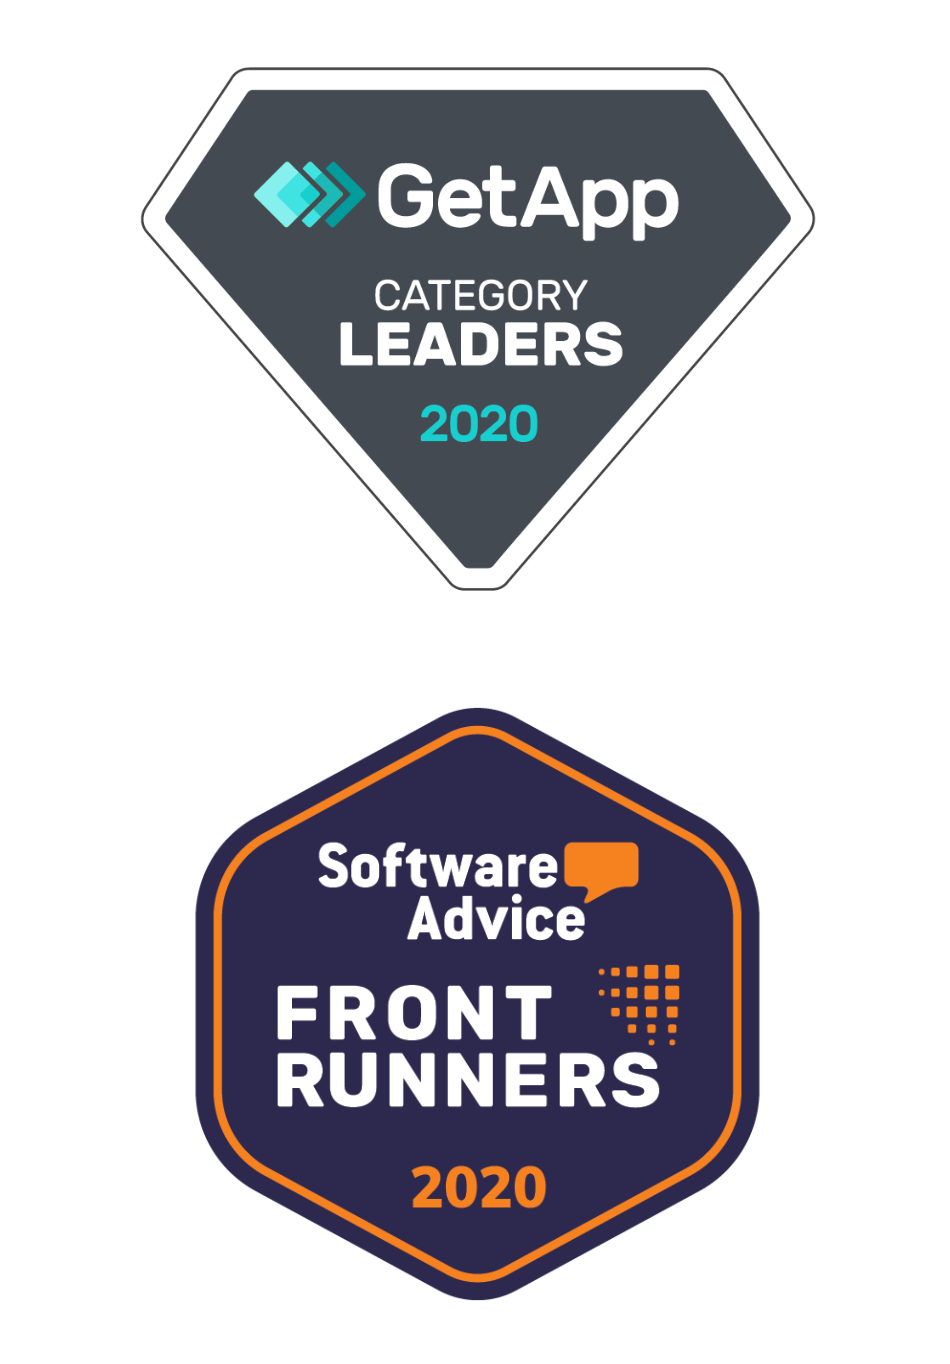 Awards from GetApp and Software Advice